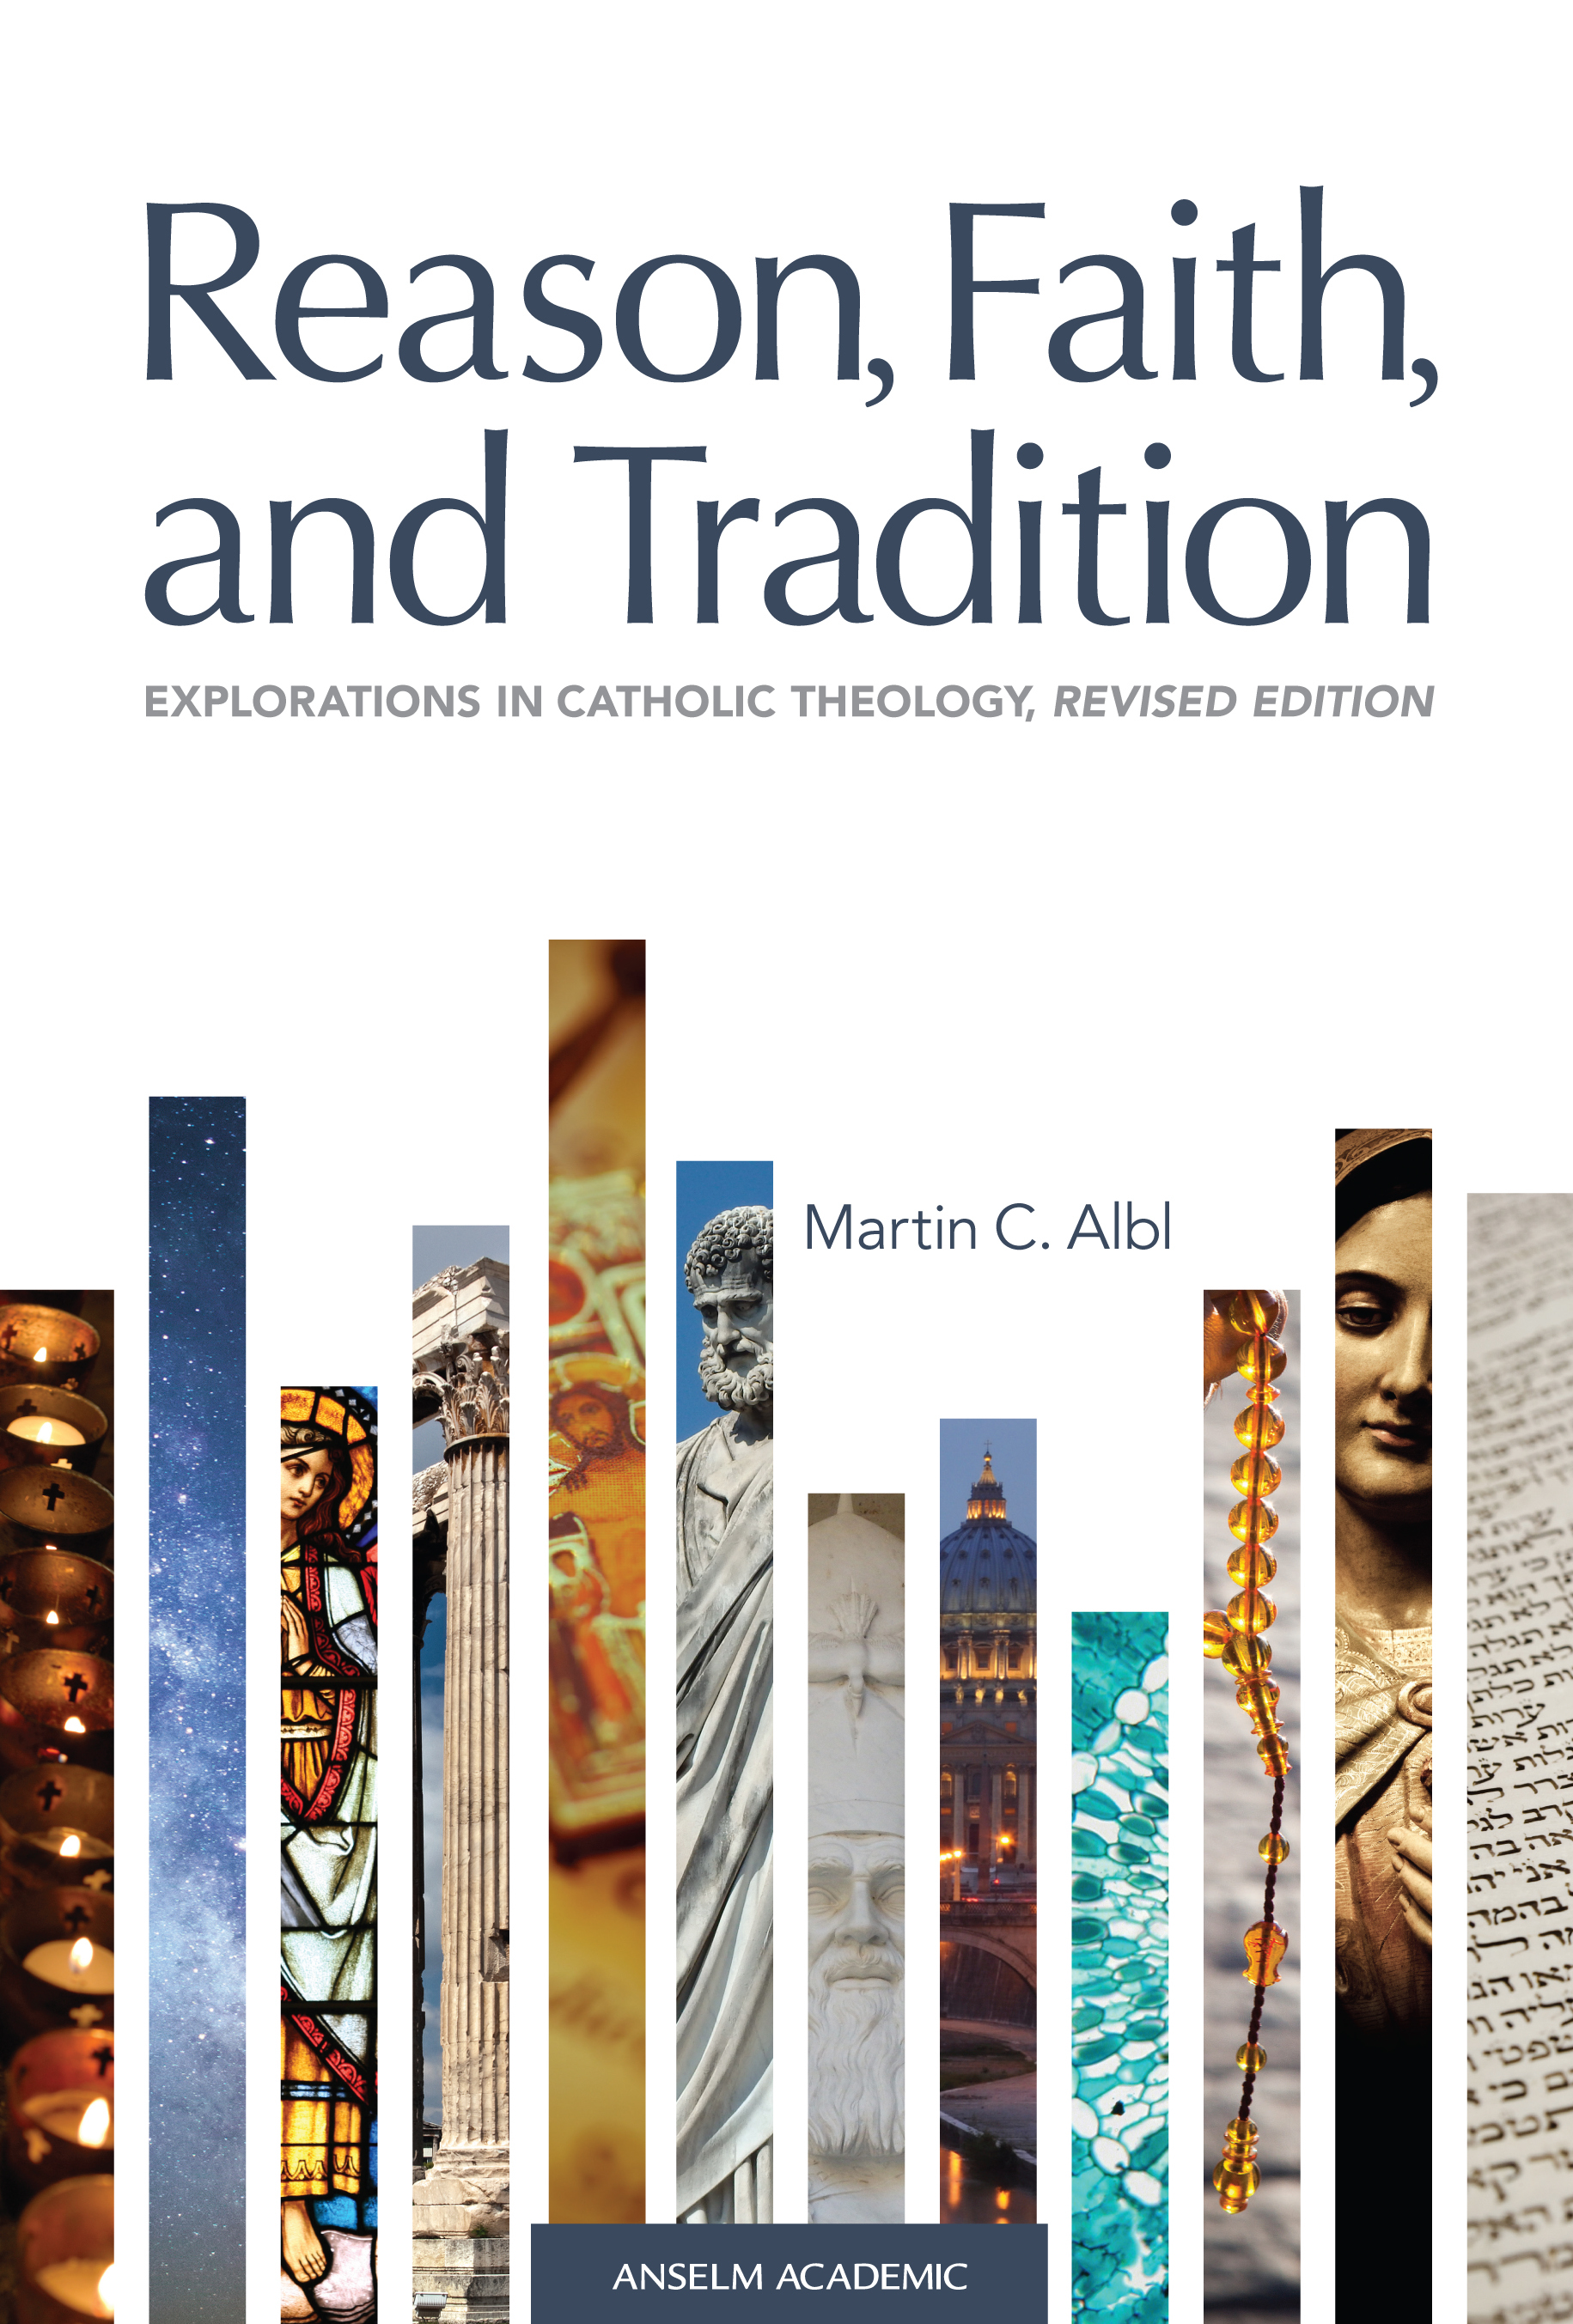 Reason, Faith, and Tradition: Explorations in Catholic Theology - Revised & Enhanced Edition